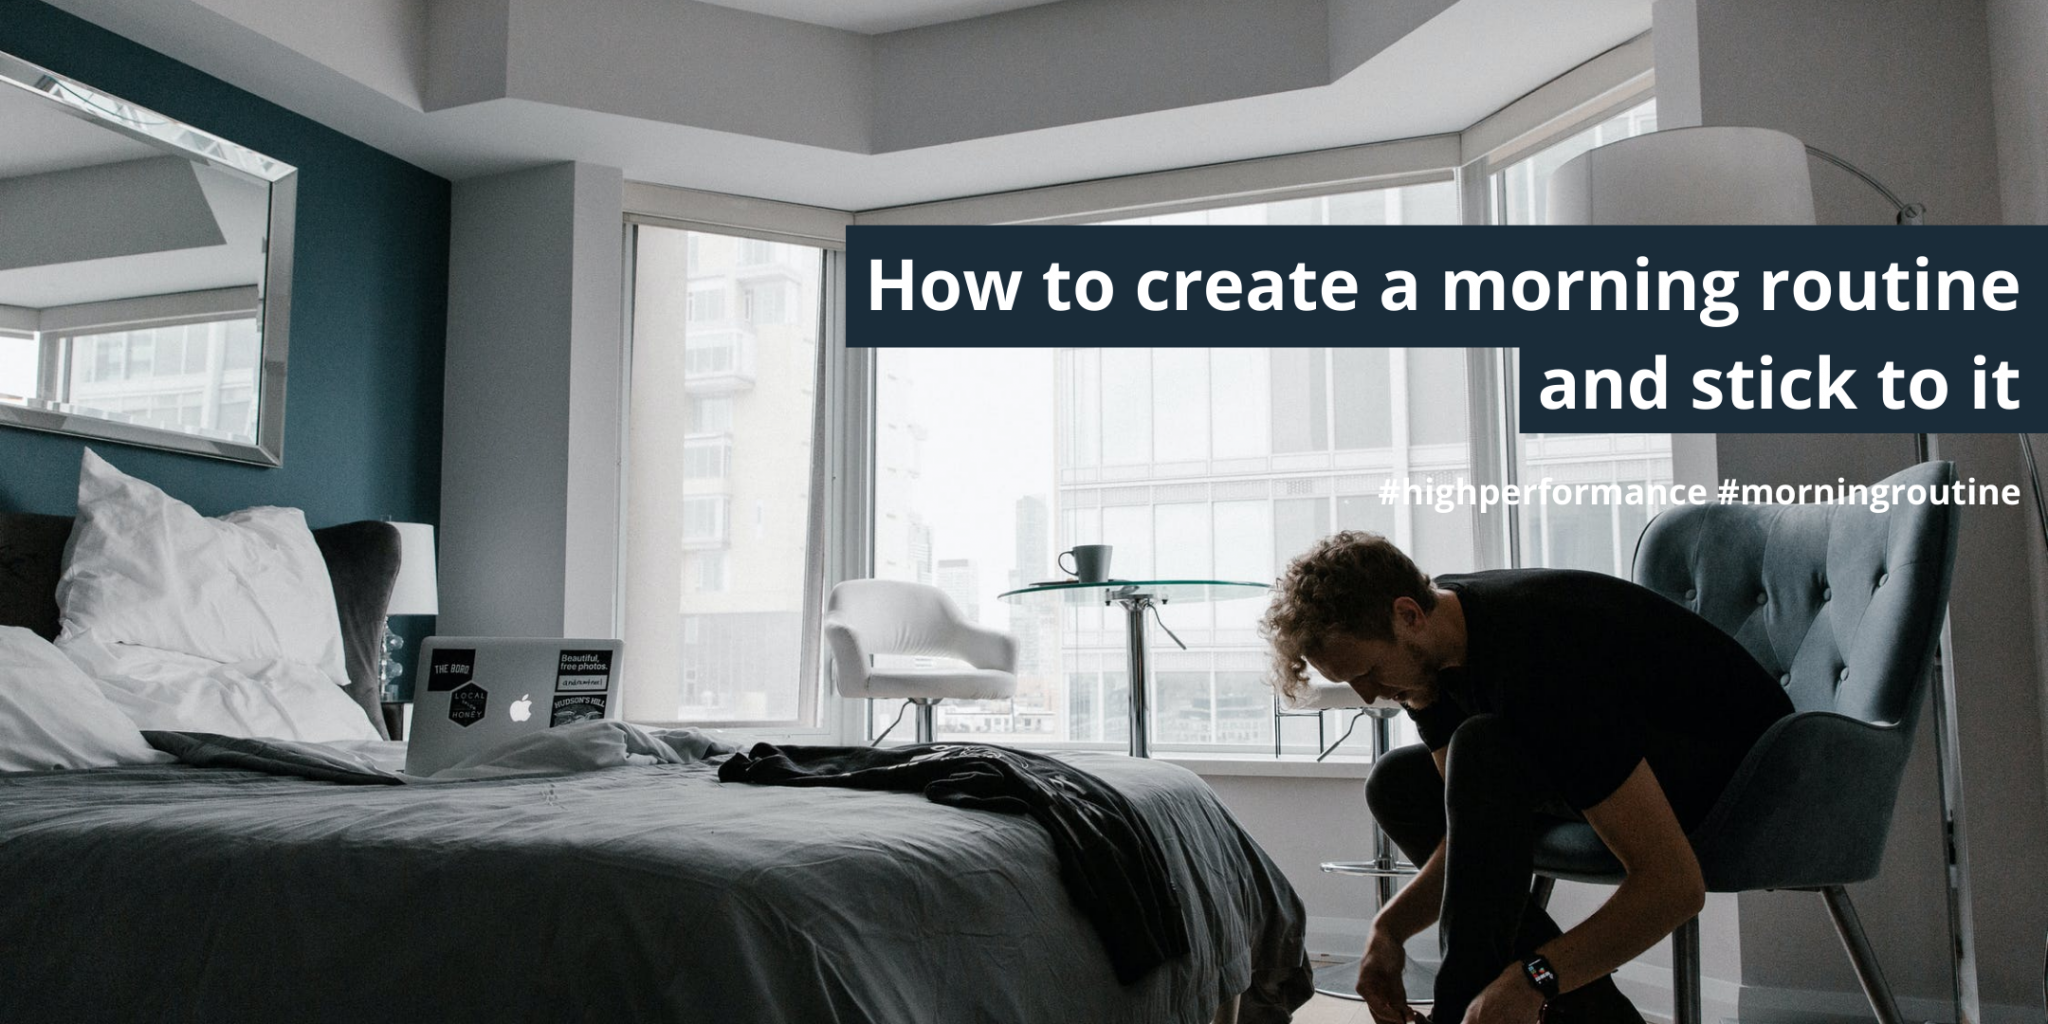 How to create a morning routine and stick to it